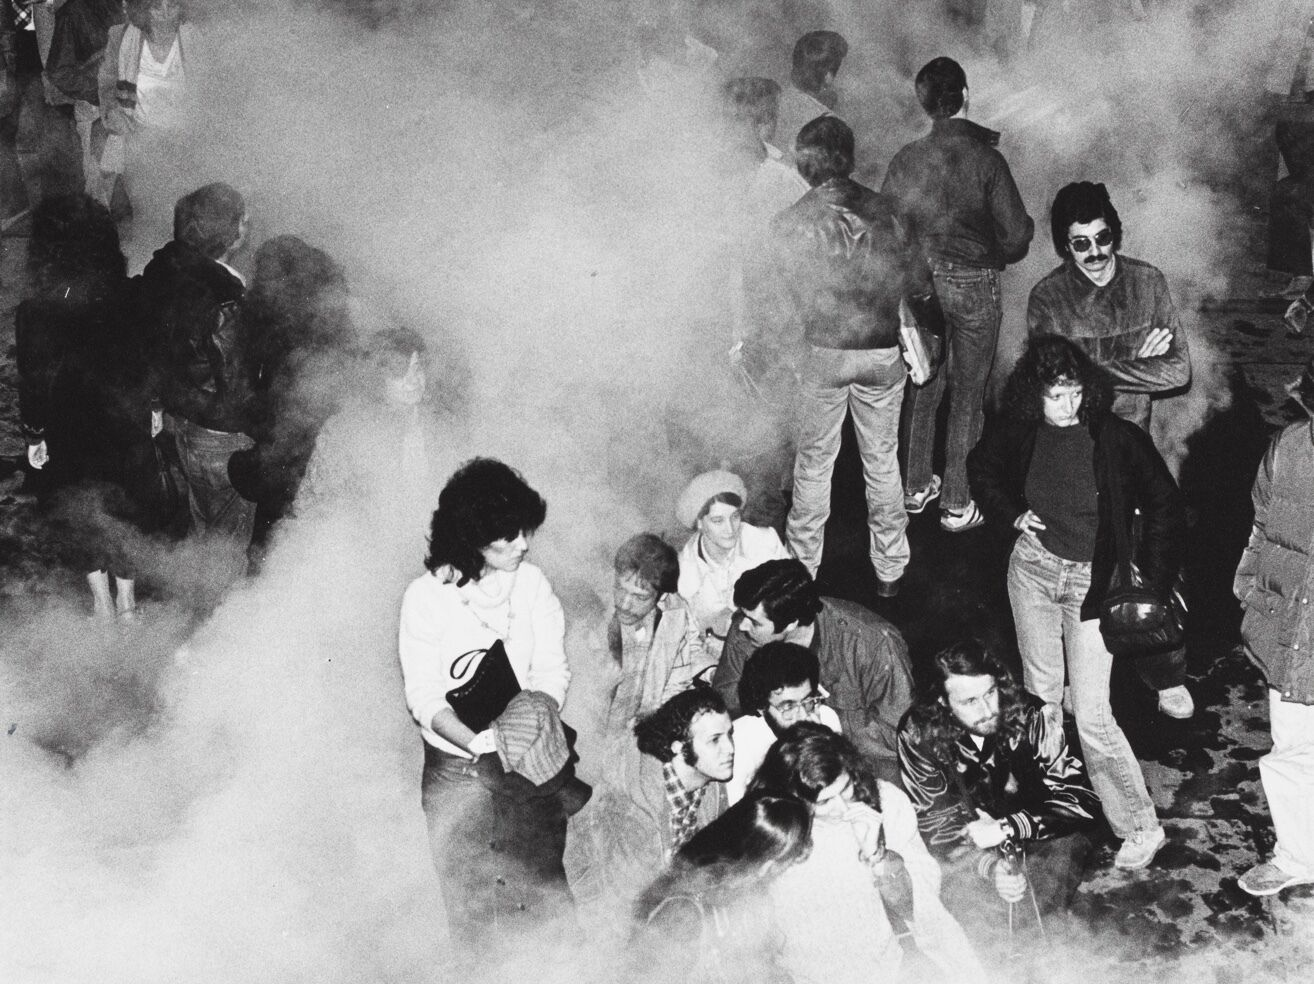 A group of people are standing outside surrounded by smoke.